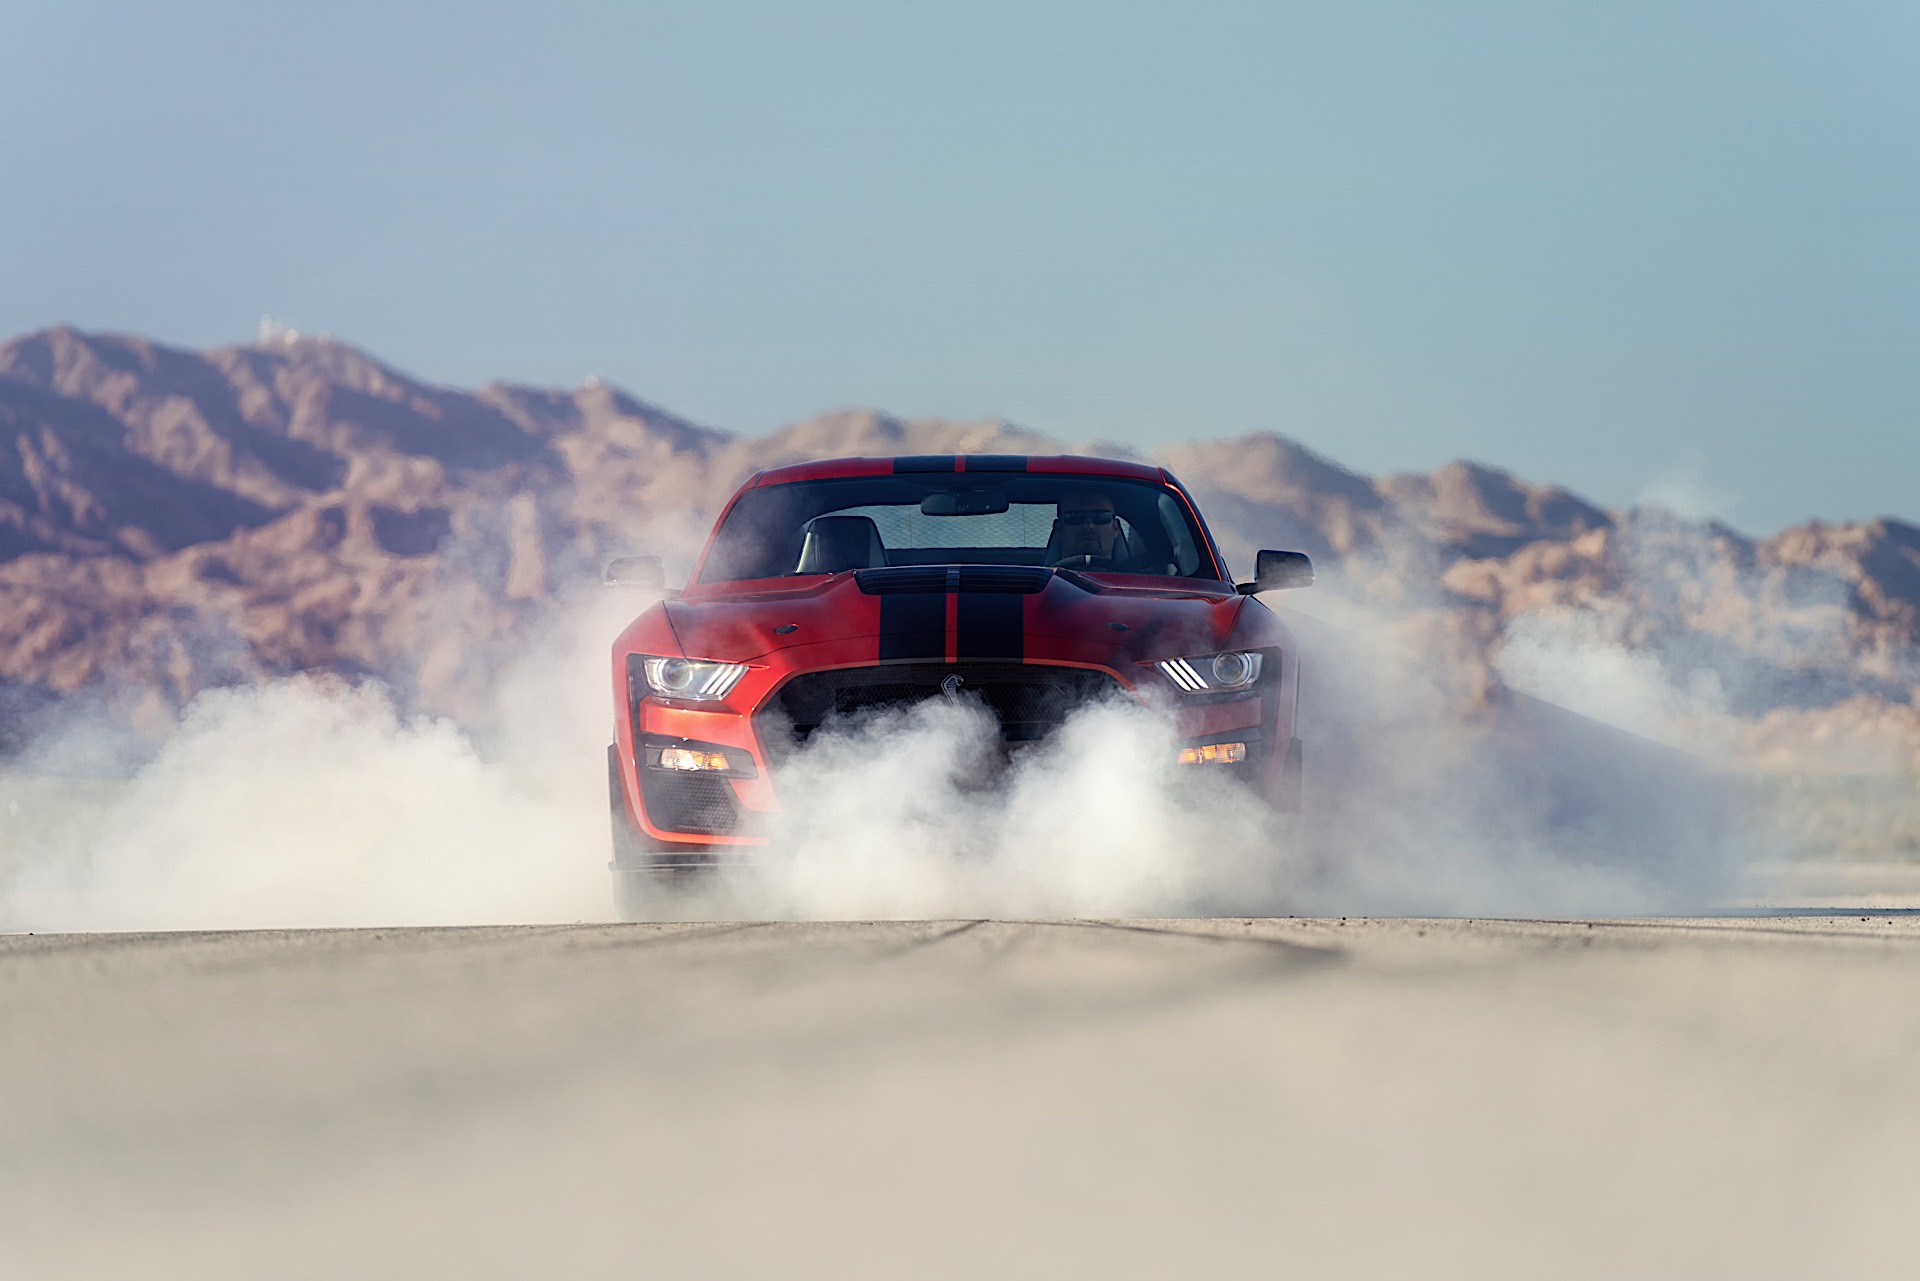 2020 Ford Mustang Shelby GT500 Roars Into Detroit With 700 HP, Loads of Carbon